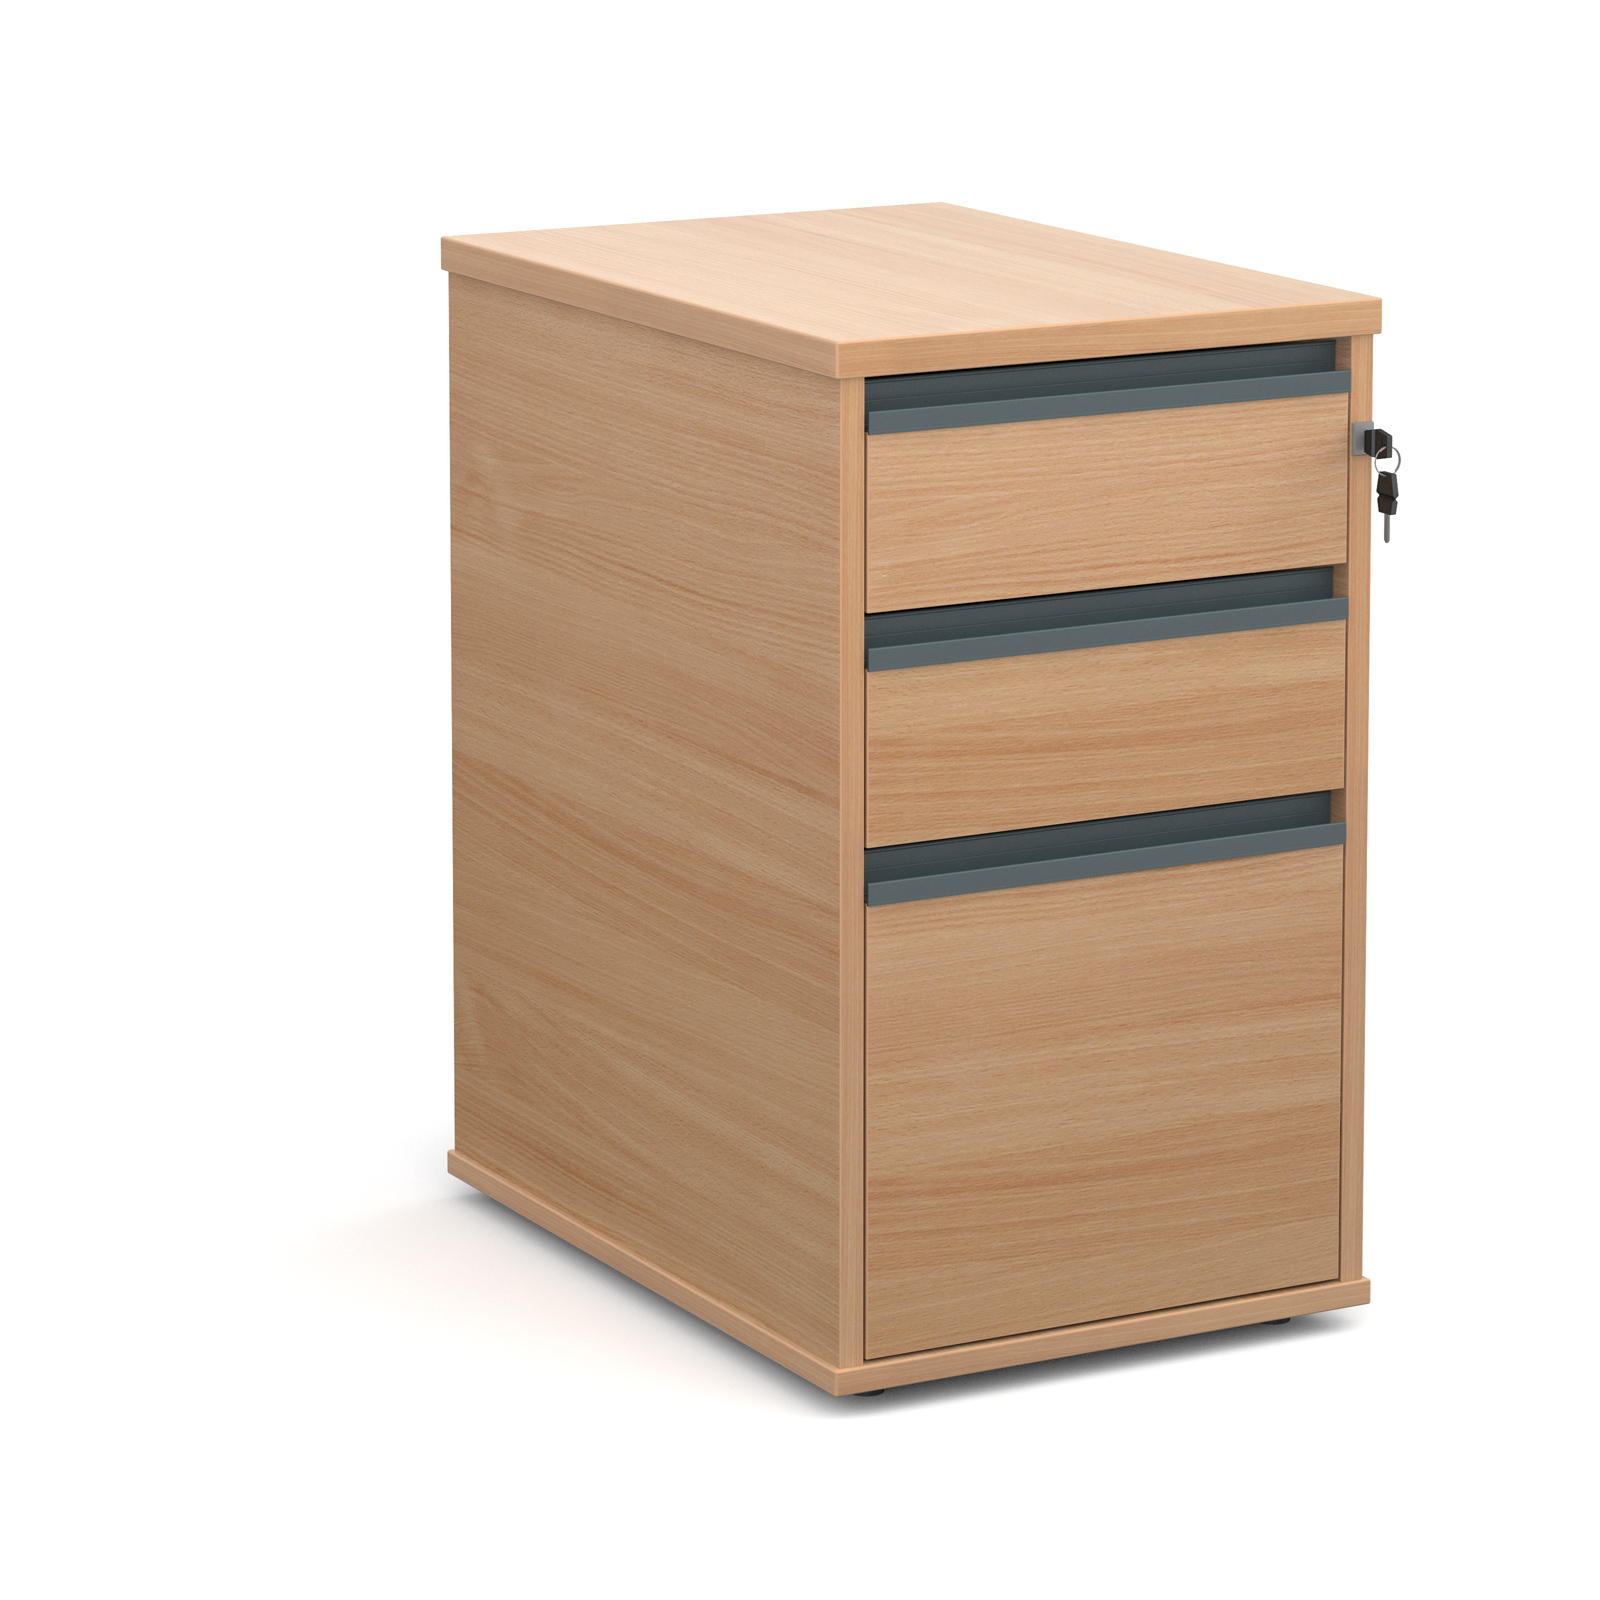 Active M25 Pedestal | Desk High